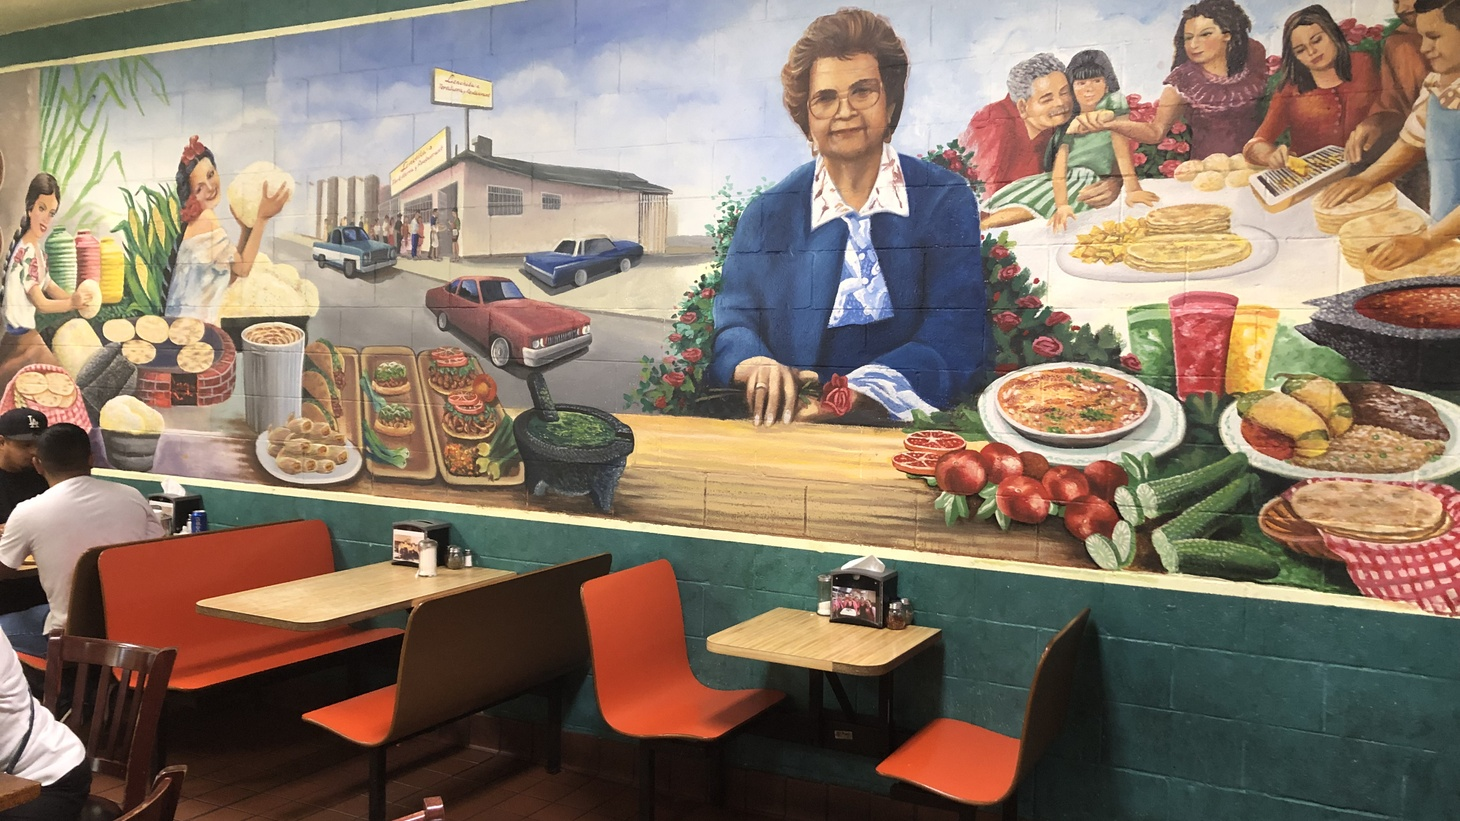 Interior mural at Lenchita's in Pacoima, which makes handmade corn tortillas.